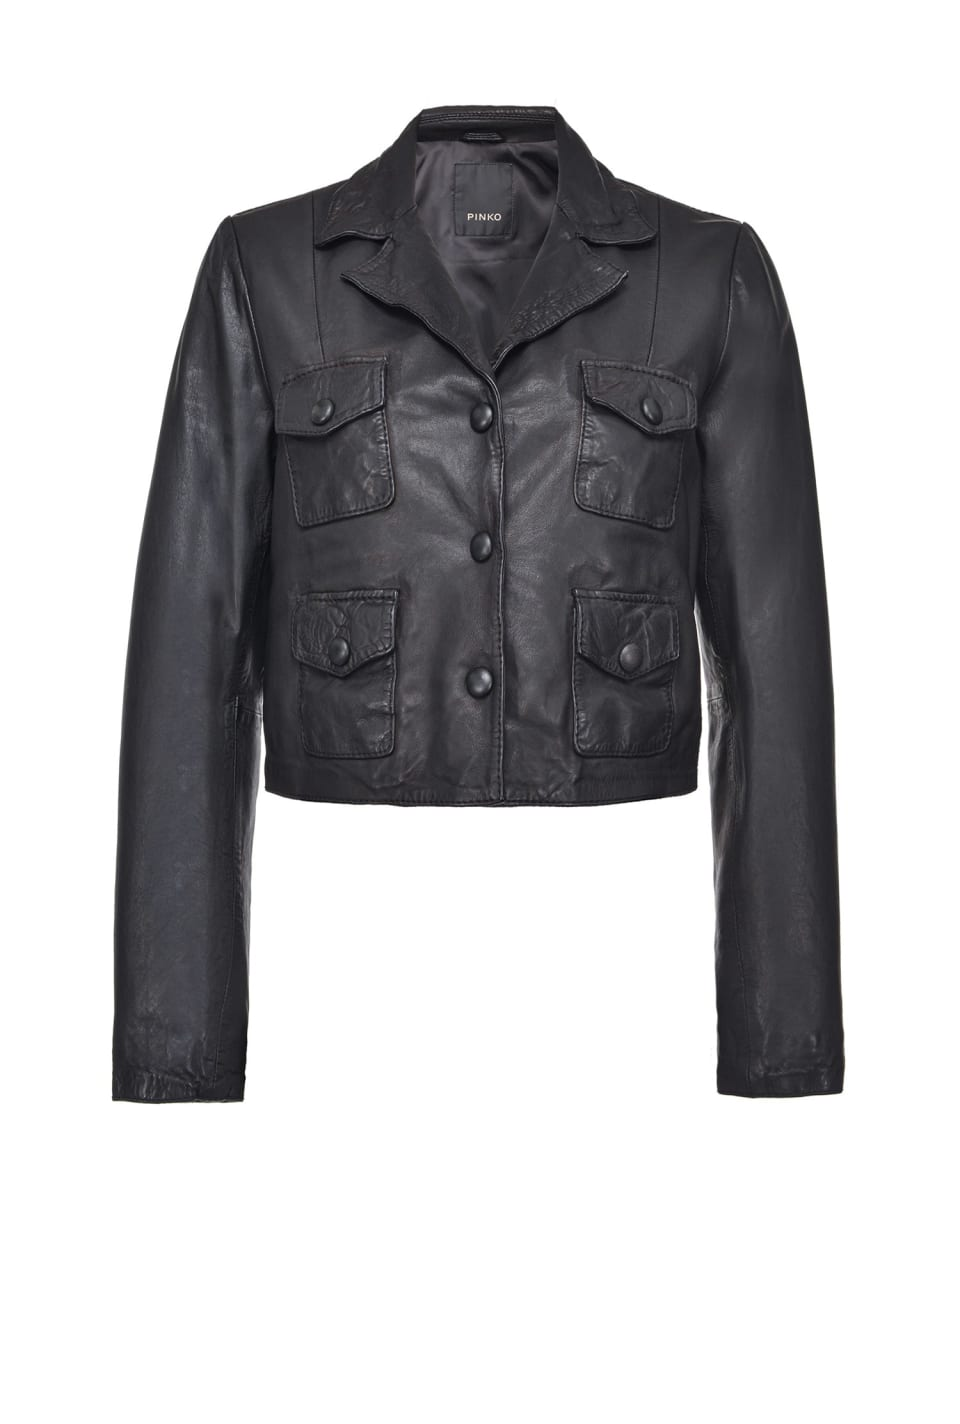 Short vegetable-tanned nappa leather jacket - Pinko